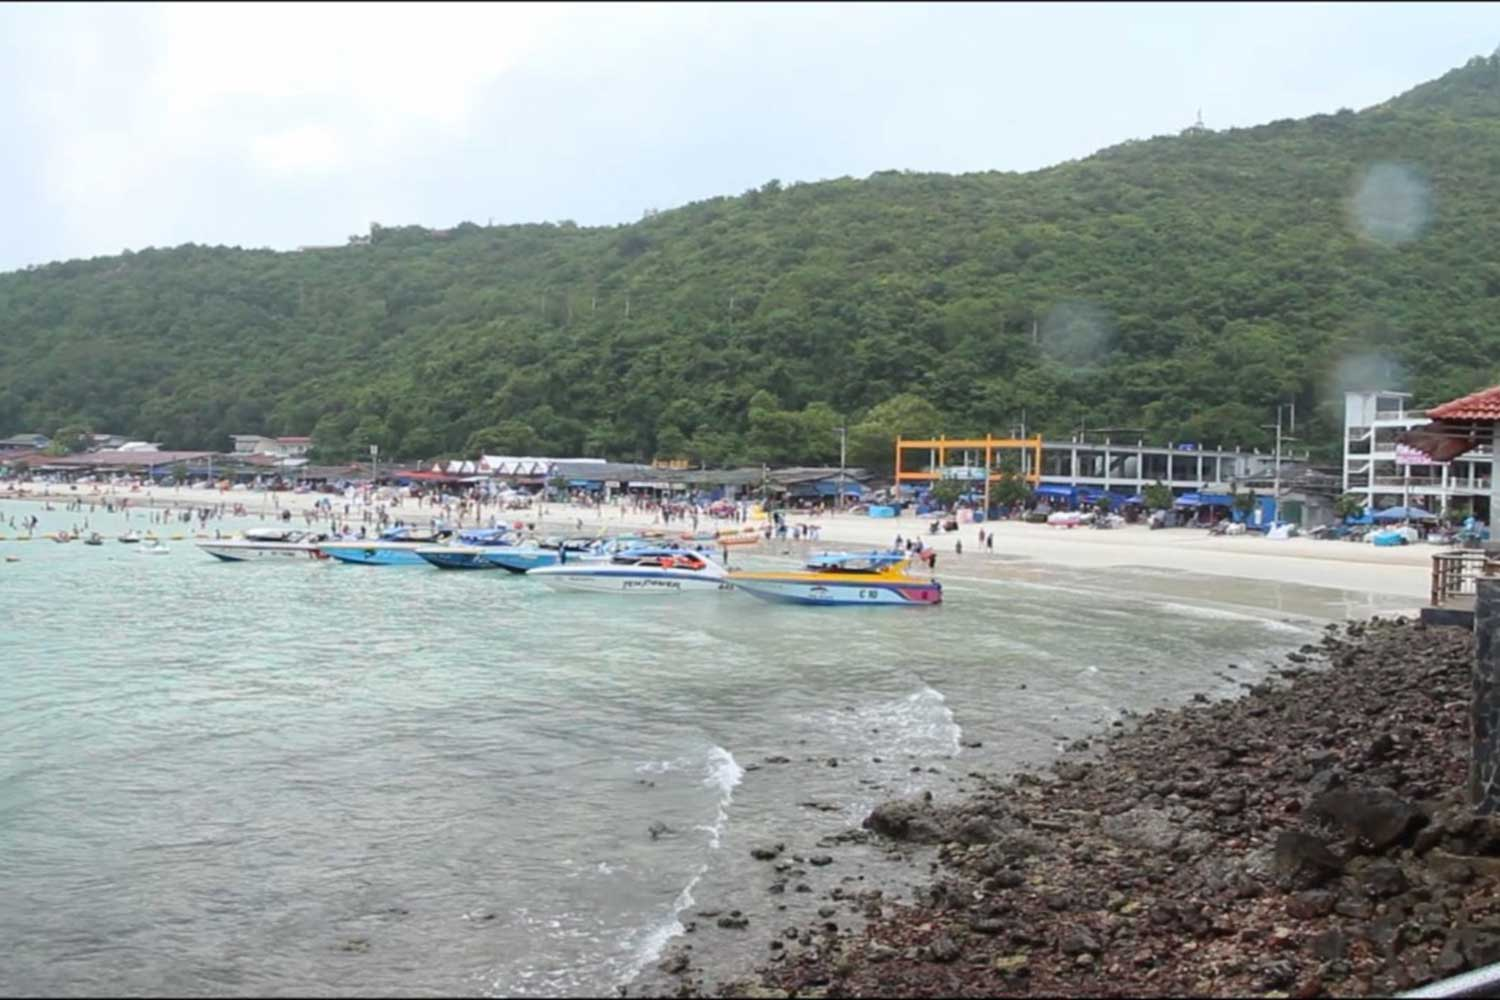 Popular Koh Lan island, off the coast from Pattaya, is expected to reopen to tourists in June. (Photo: Chaiyot Pupattanapong)